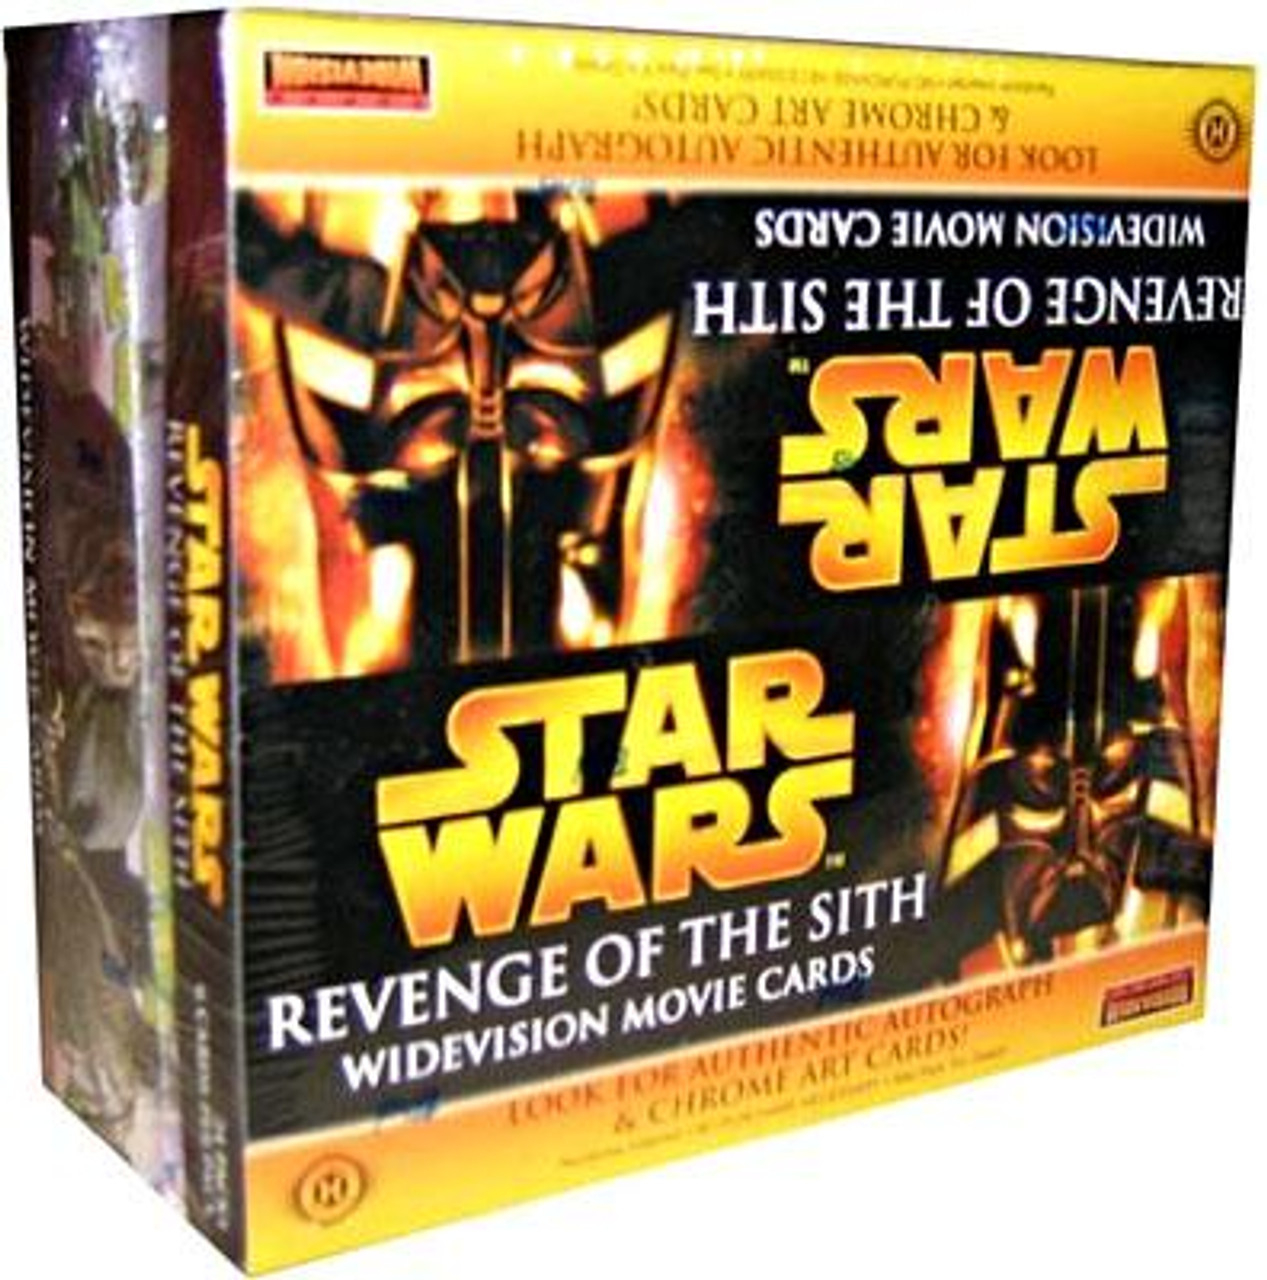 Star Wars Revenge of the Sith Widescreen Trading Card Box